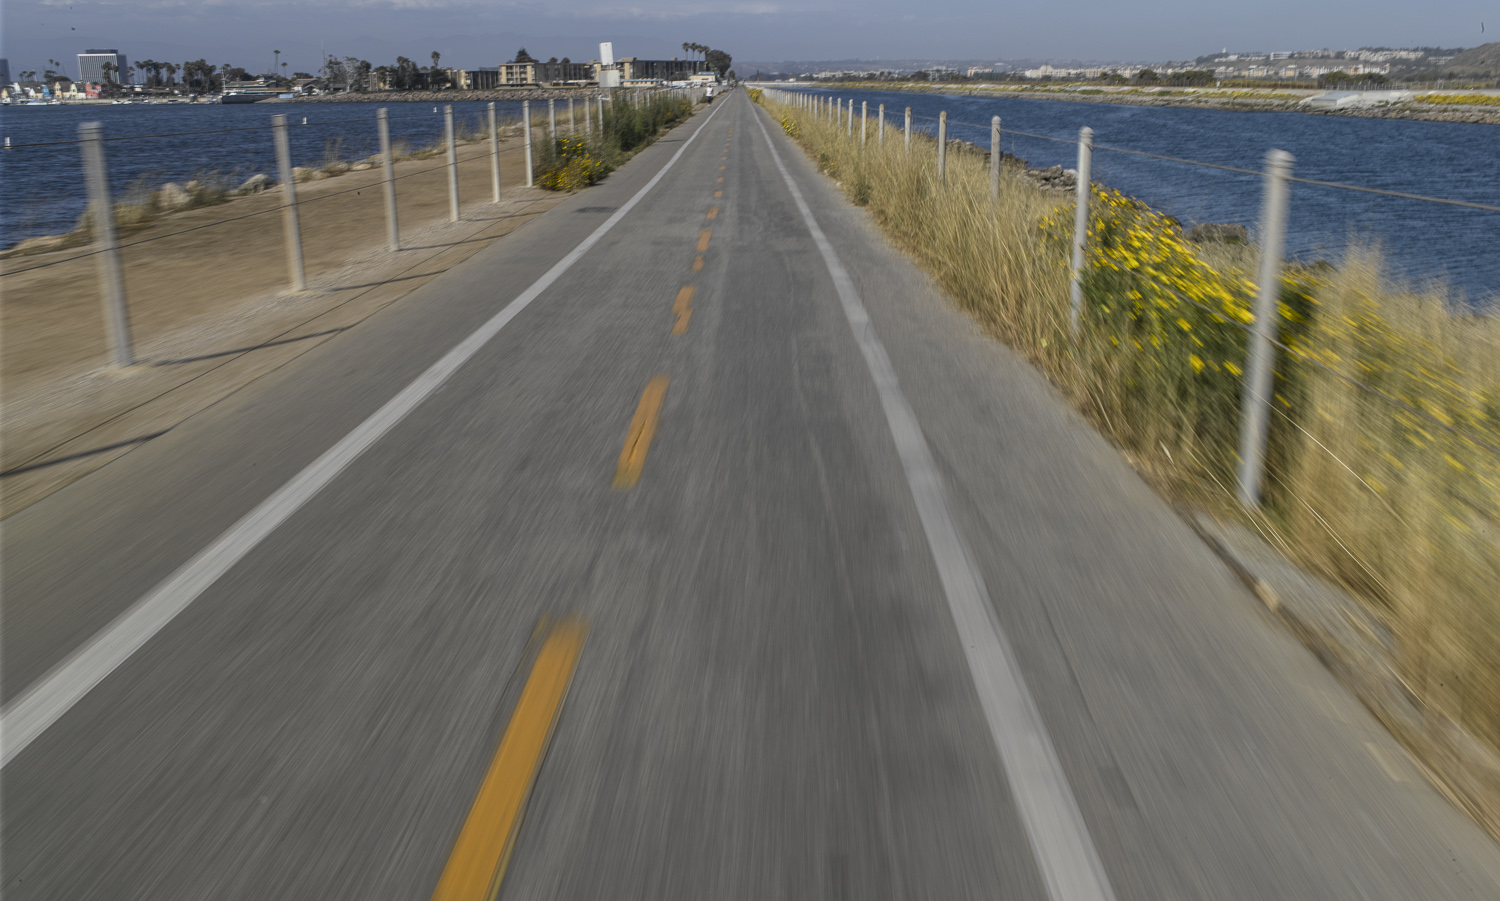 Ballona Creek bike path, Los Angeles - 2010